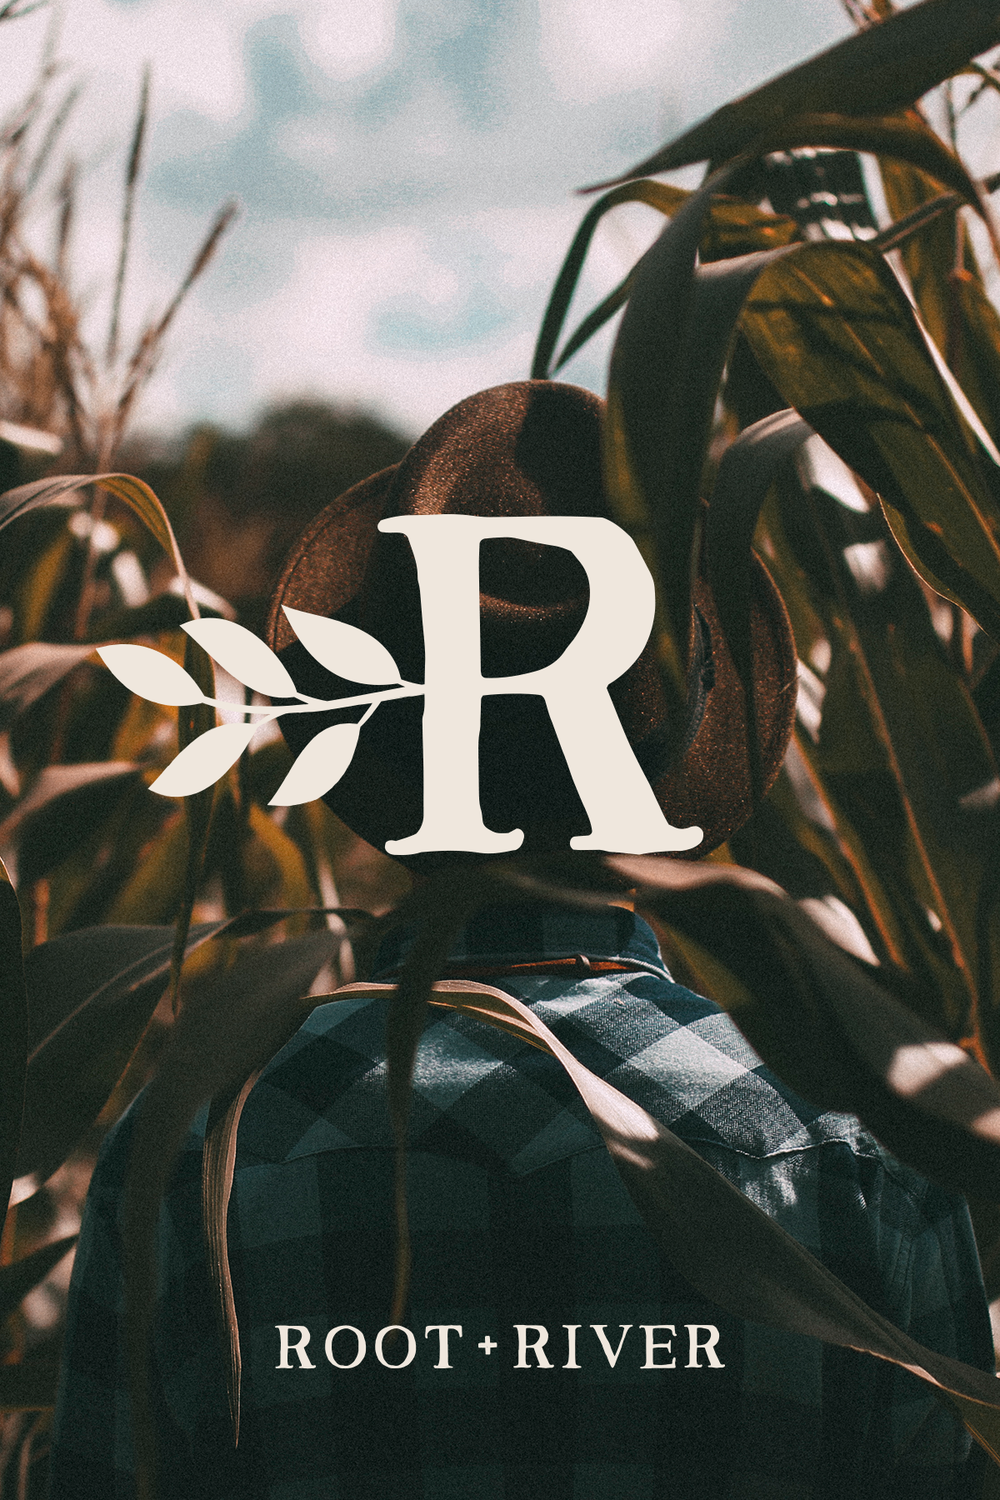 root + river brand design by Pace Creative Design Studio